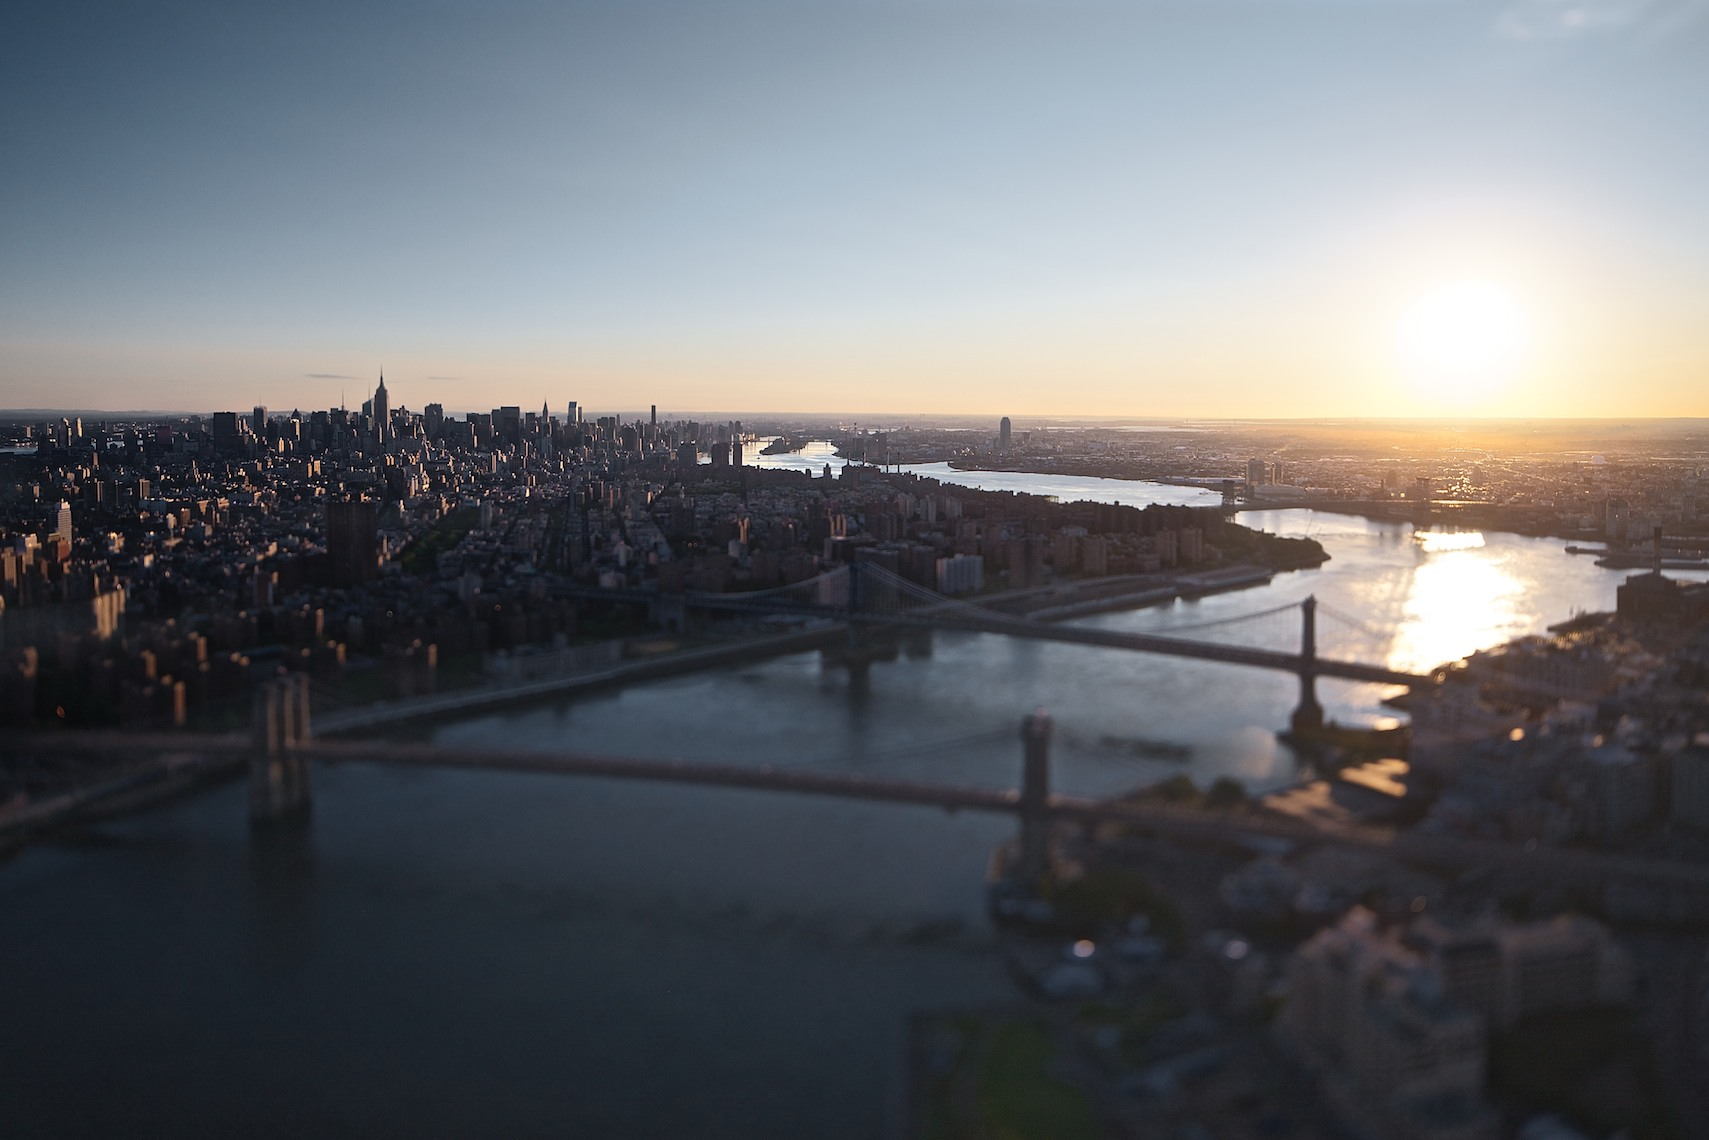 East River Bridges, Brooklyn, NY (Laforet NY Bridges Tilt-Shift Aerial 01)